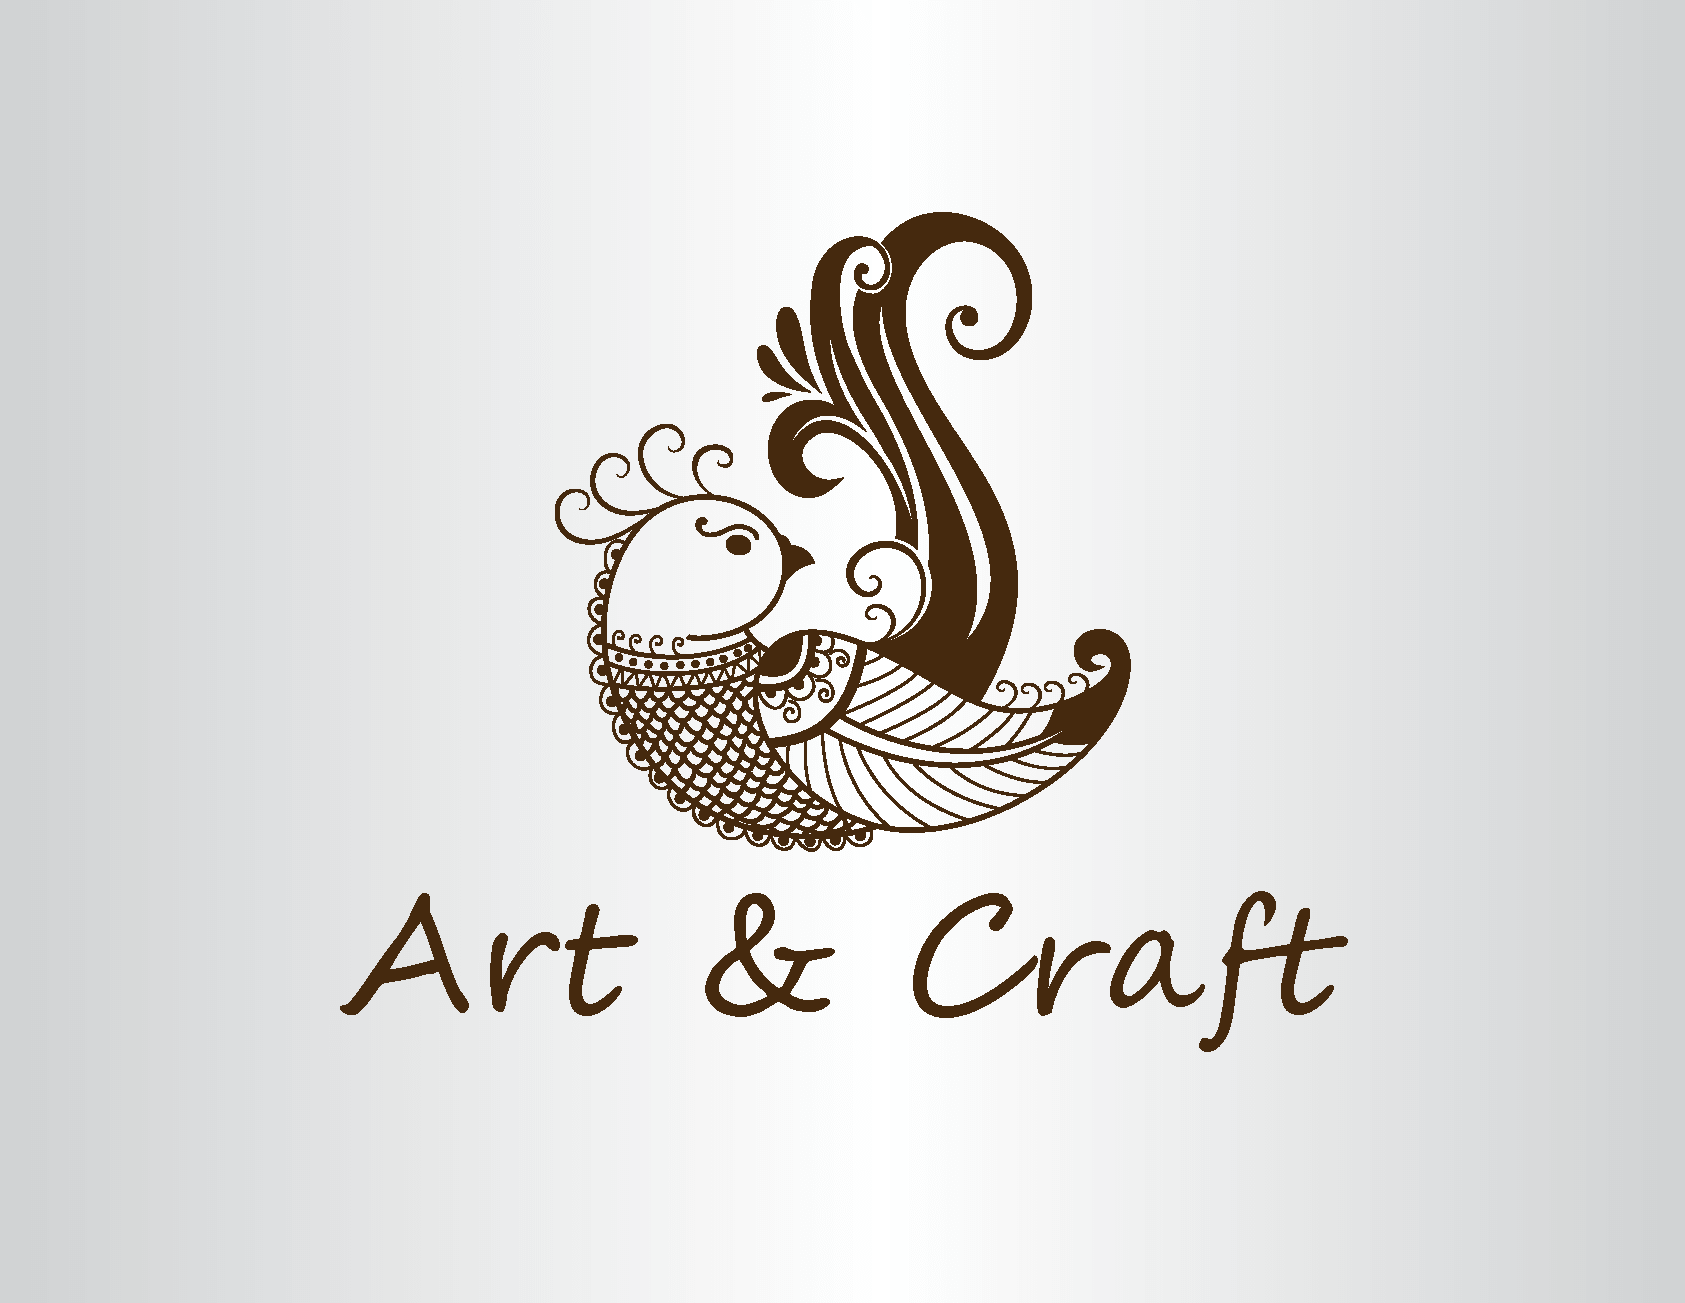 The Handcrafted Logo Design of Bird by LogoSkill.